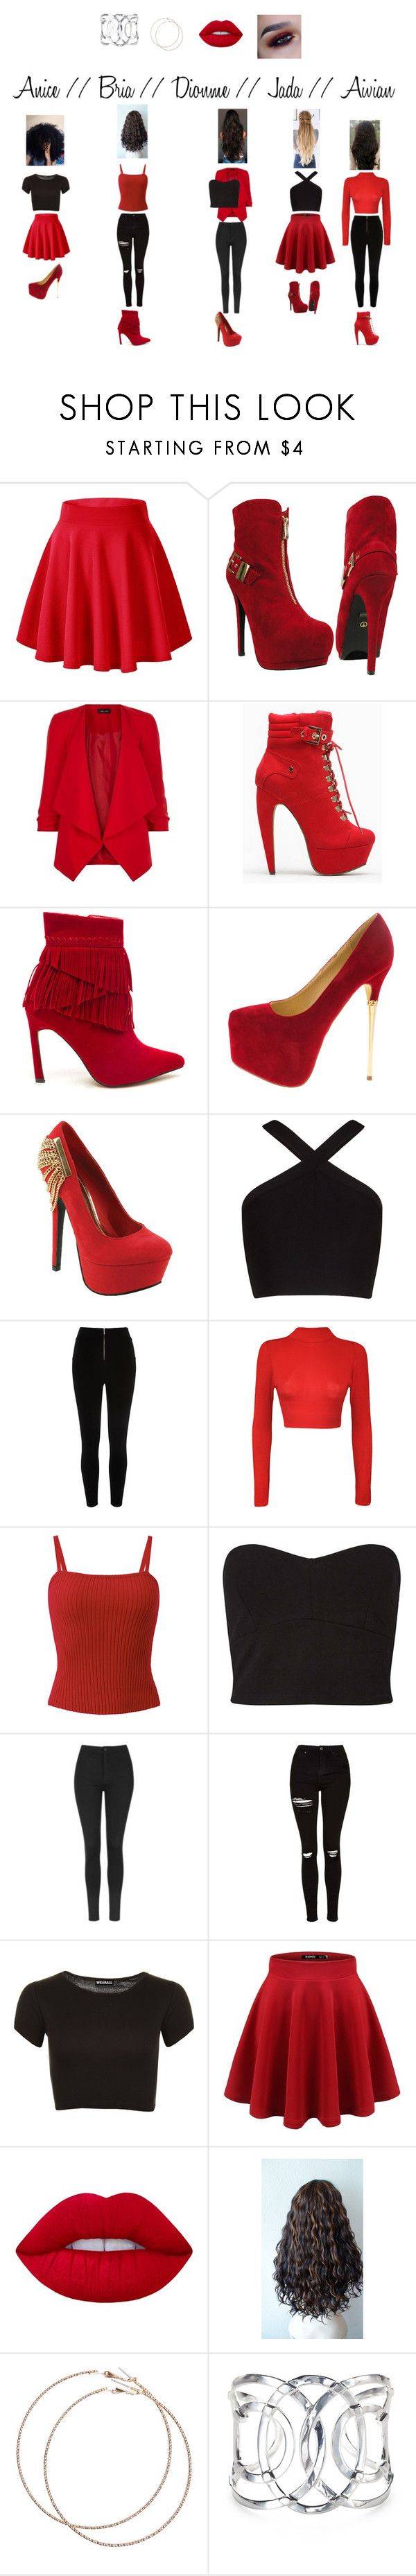 """""""Guardian Angels FIRE"""" by the-guardian-angels on Polyvore featuring New Look, Red Circle, BCBGMAXAZRIA, River Island, WearAll, Miss Selfridge, Topshop, Lime Crime, GURU and Wet Seal"""